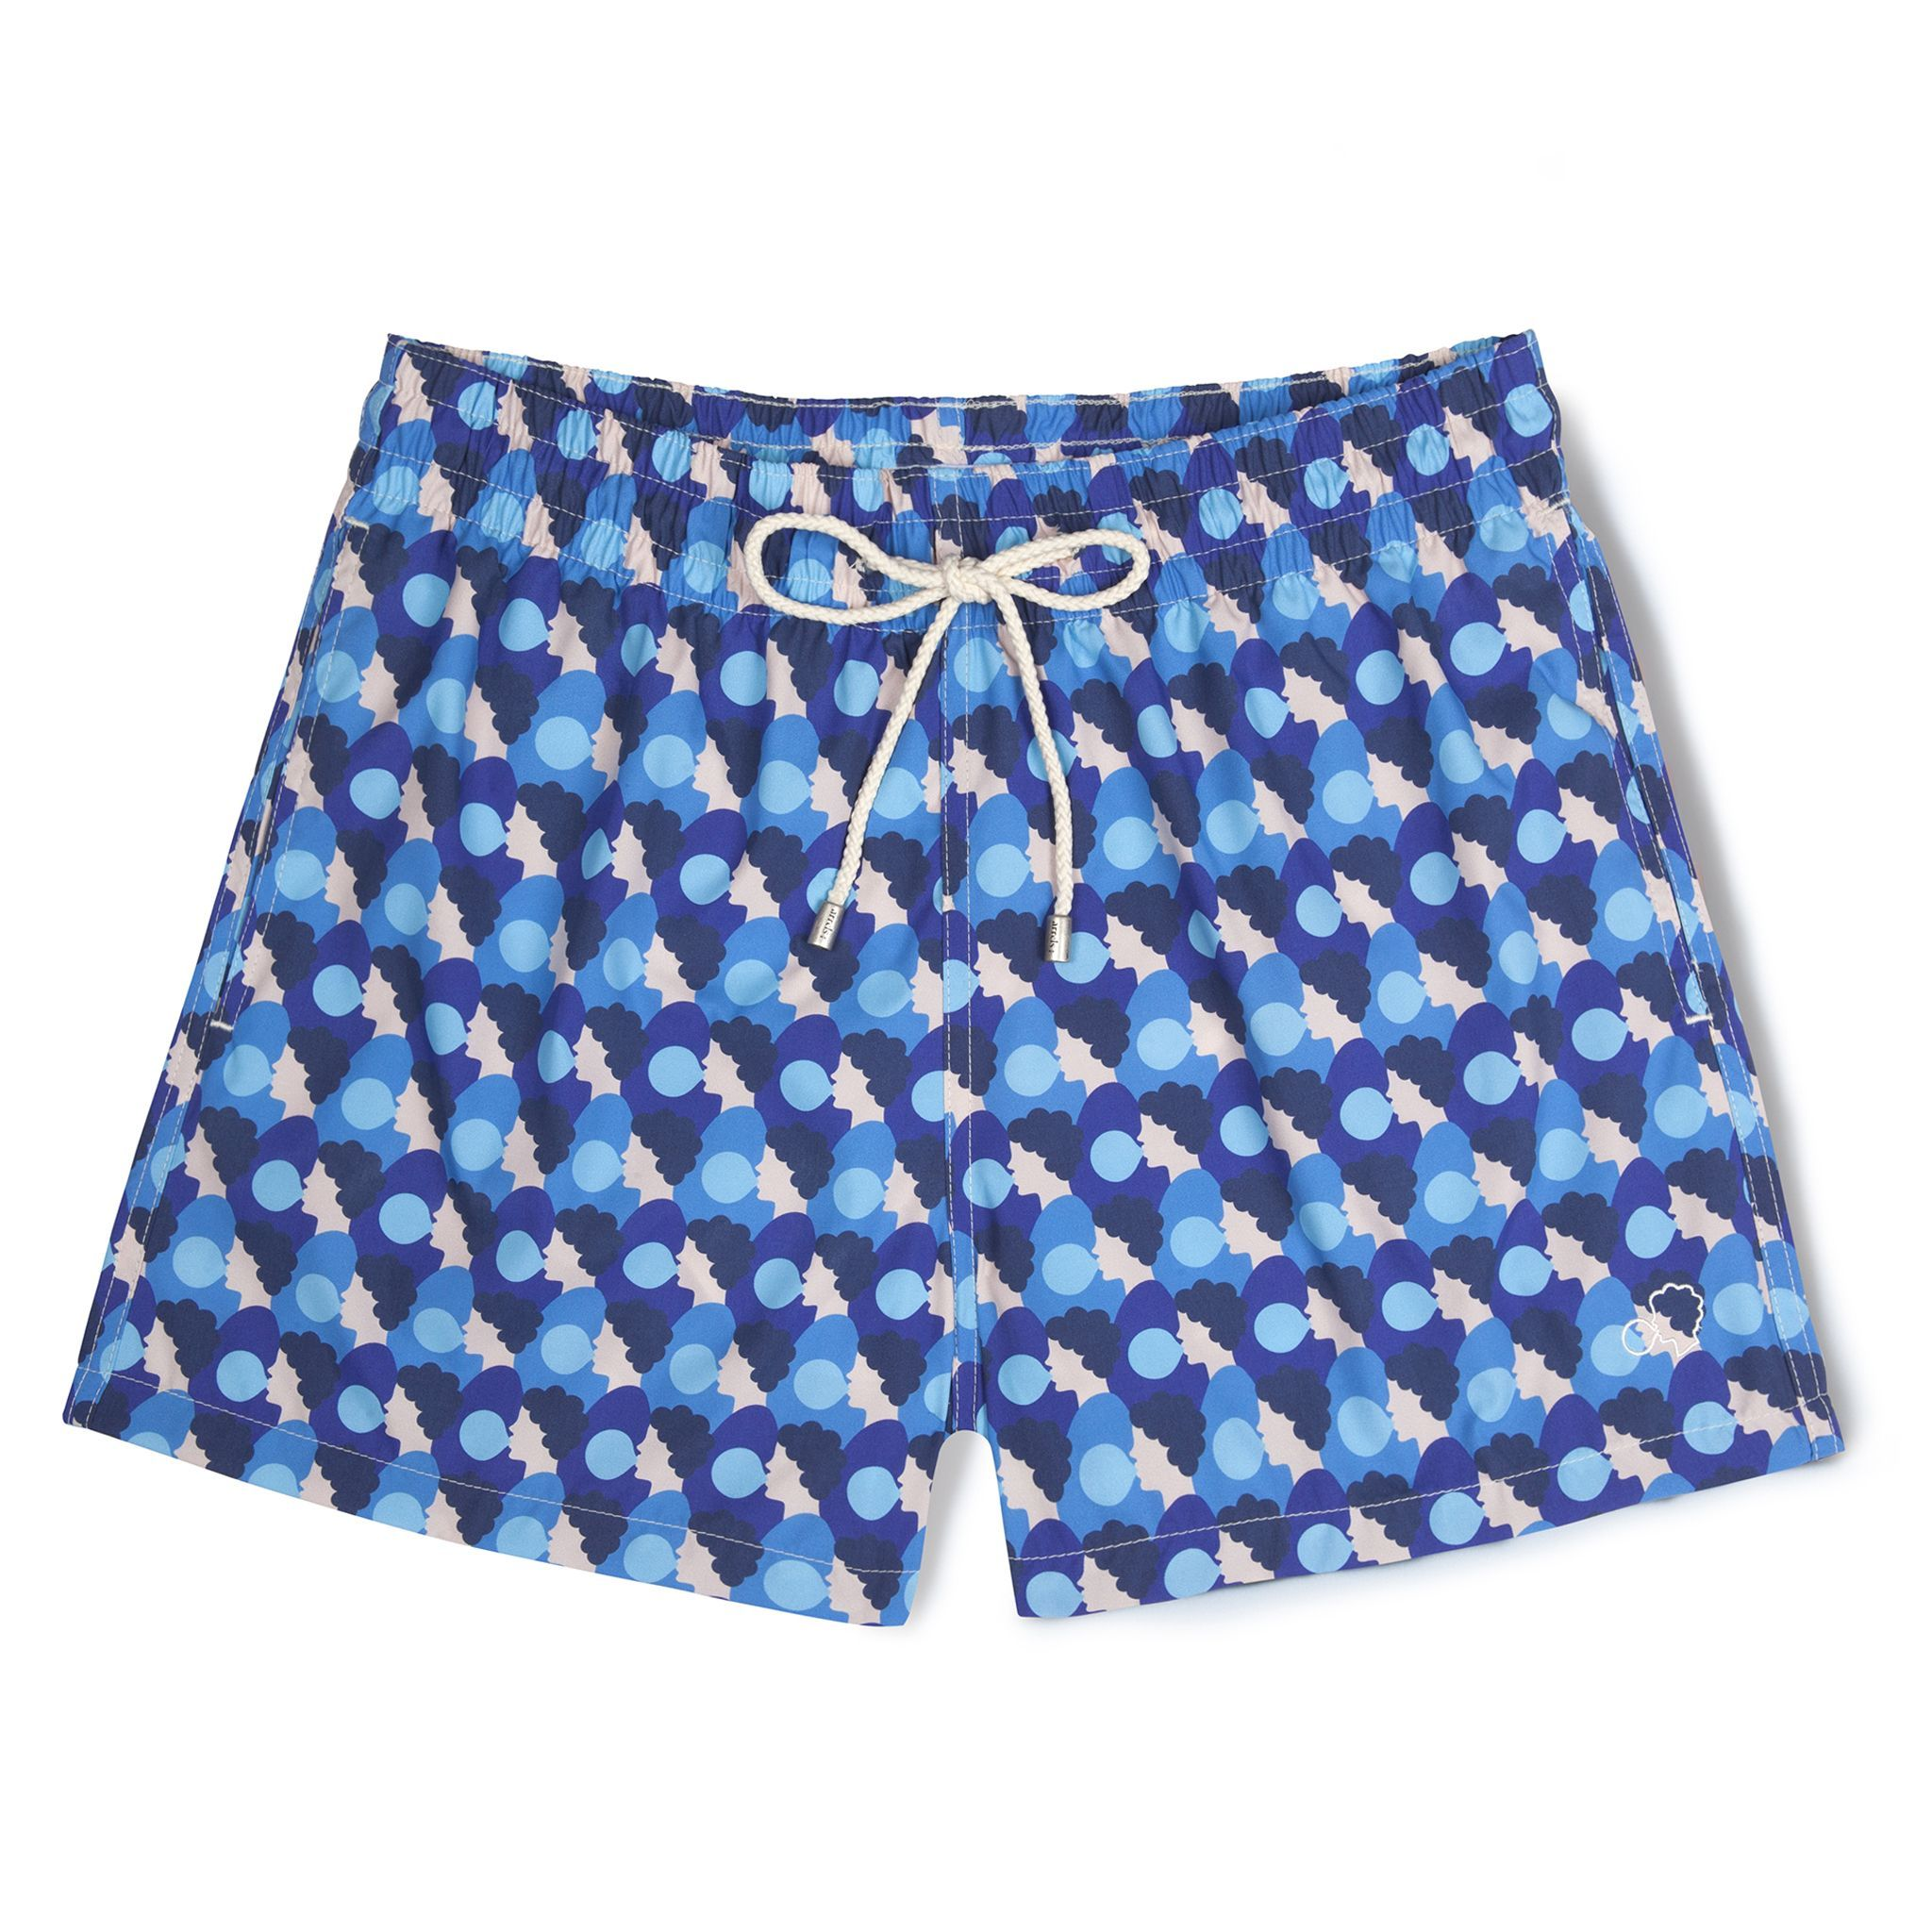 Short-Length Swim Shorts Blue Bubblegum